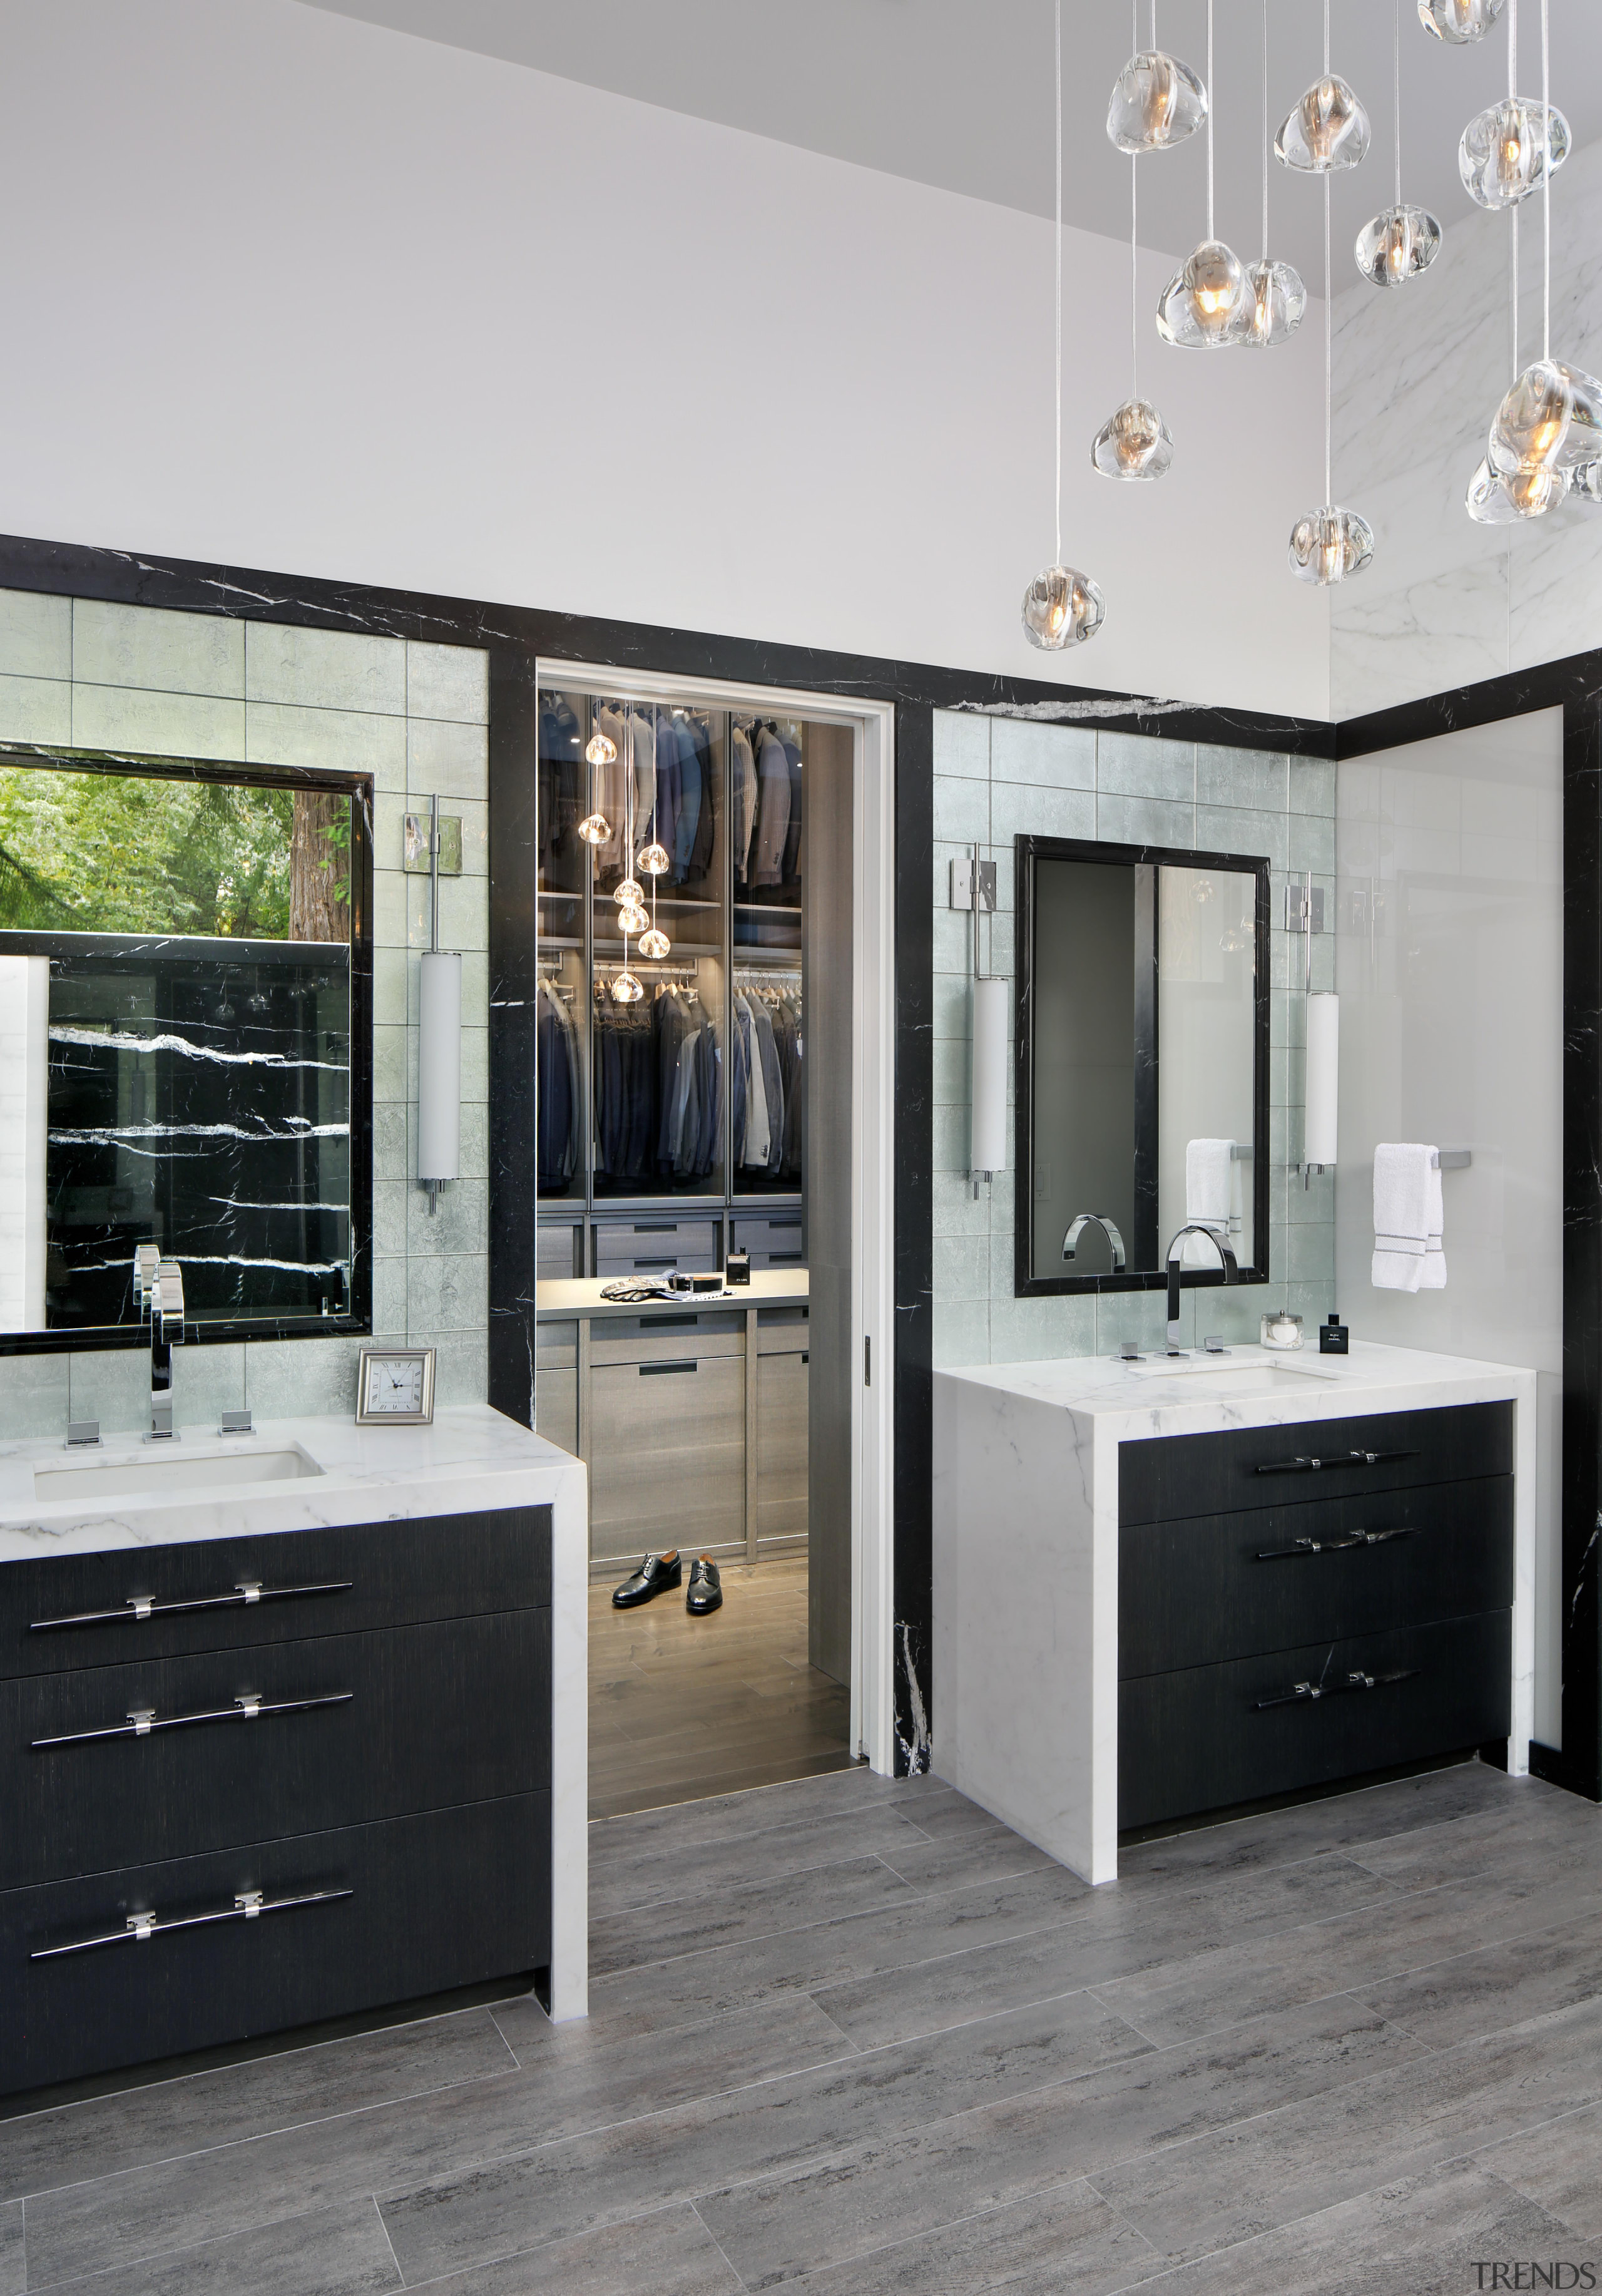 Trends] | As part of a whole bathroom renovation by designer Leslie ...